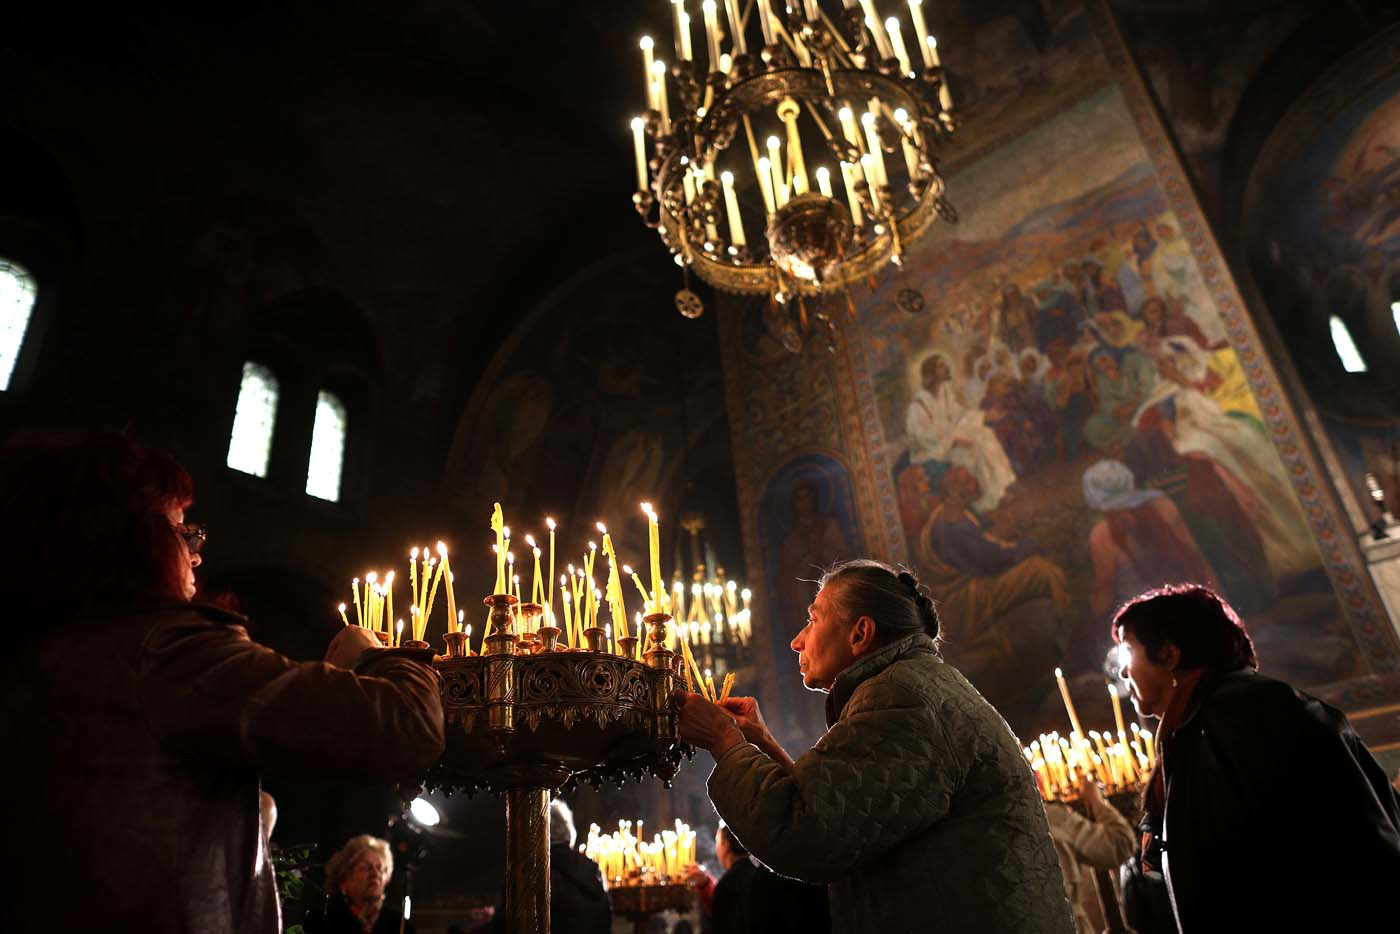 Worshippers light candles during the Palm Sunday service in the Alexander Nevsky Cathedral in Sofia, Bulgaria April 9, 2017. REUTERS/Stoyan Nenov